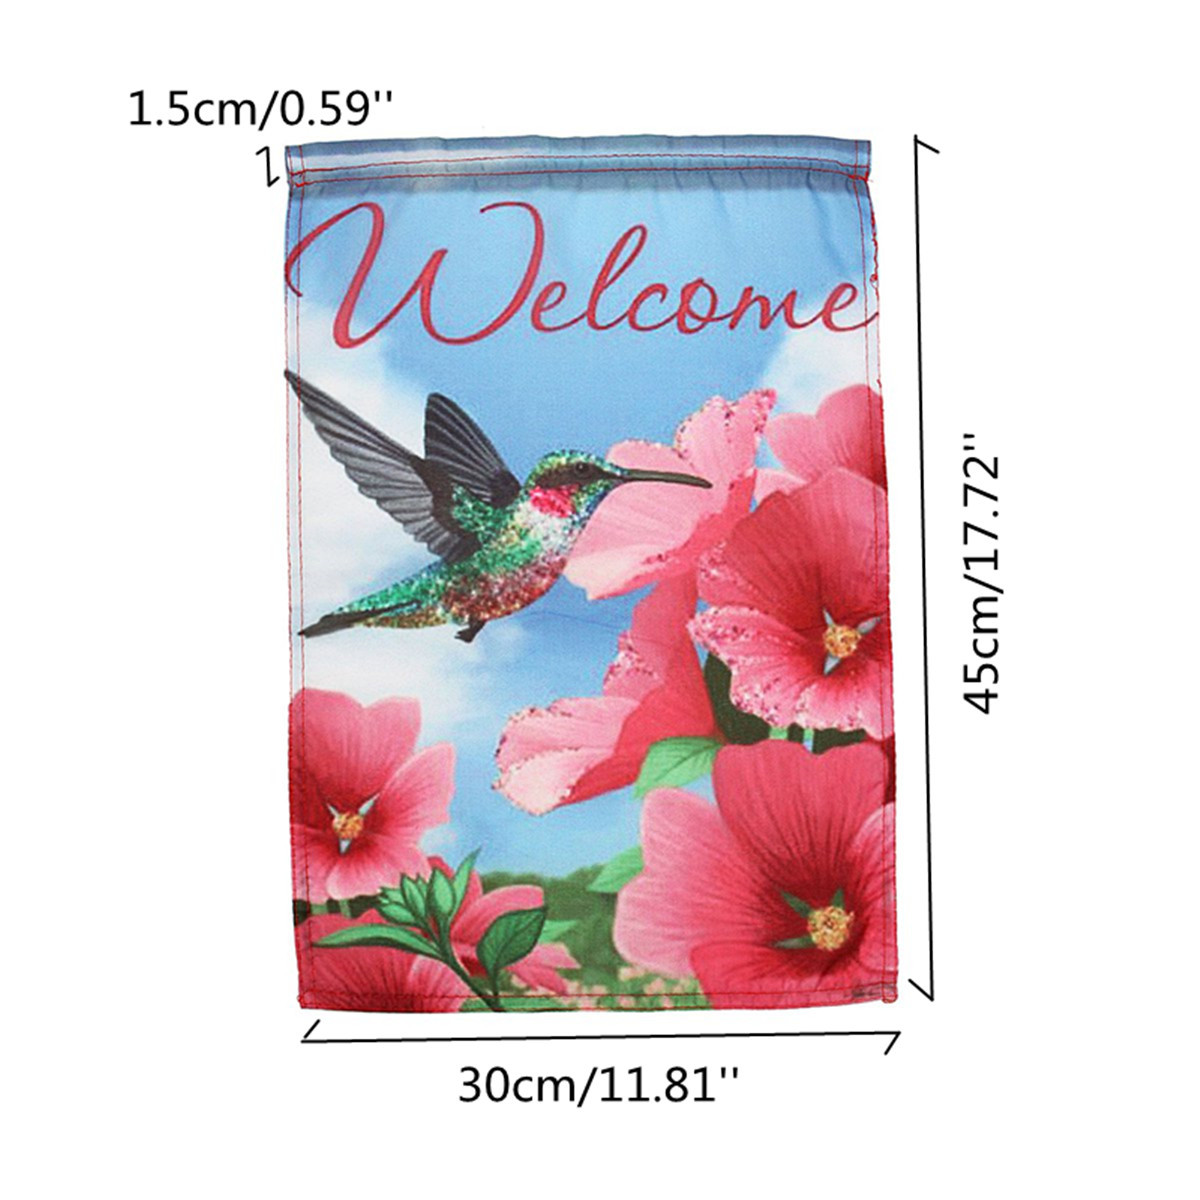 12x18 Inch Mini Welcome Flags Garden Yard Banner Bird&Flowers House Decorations